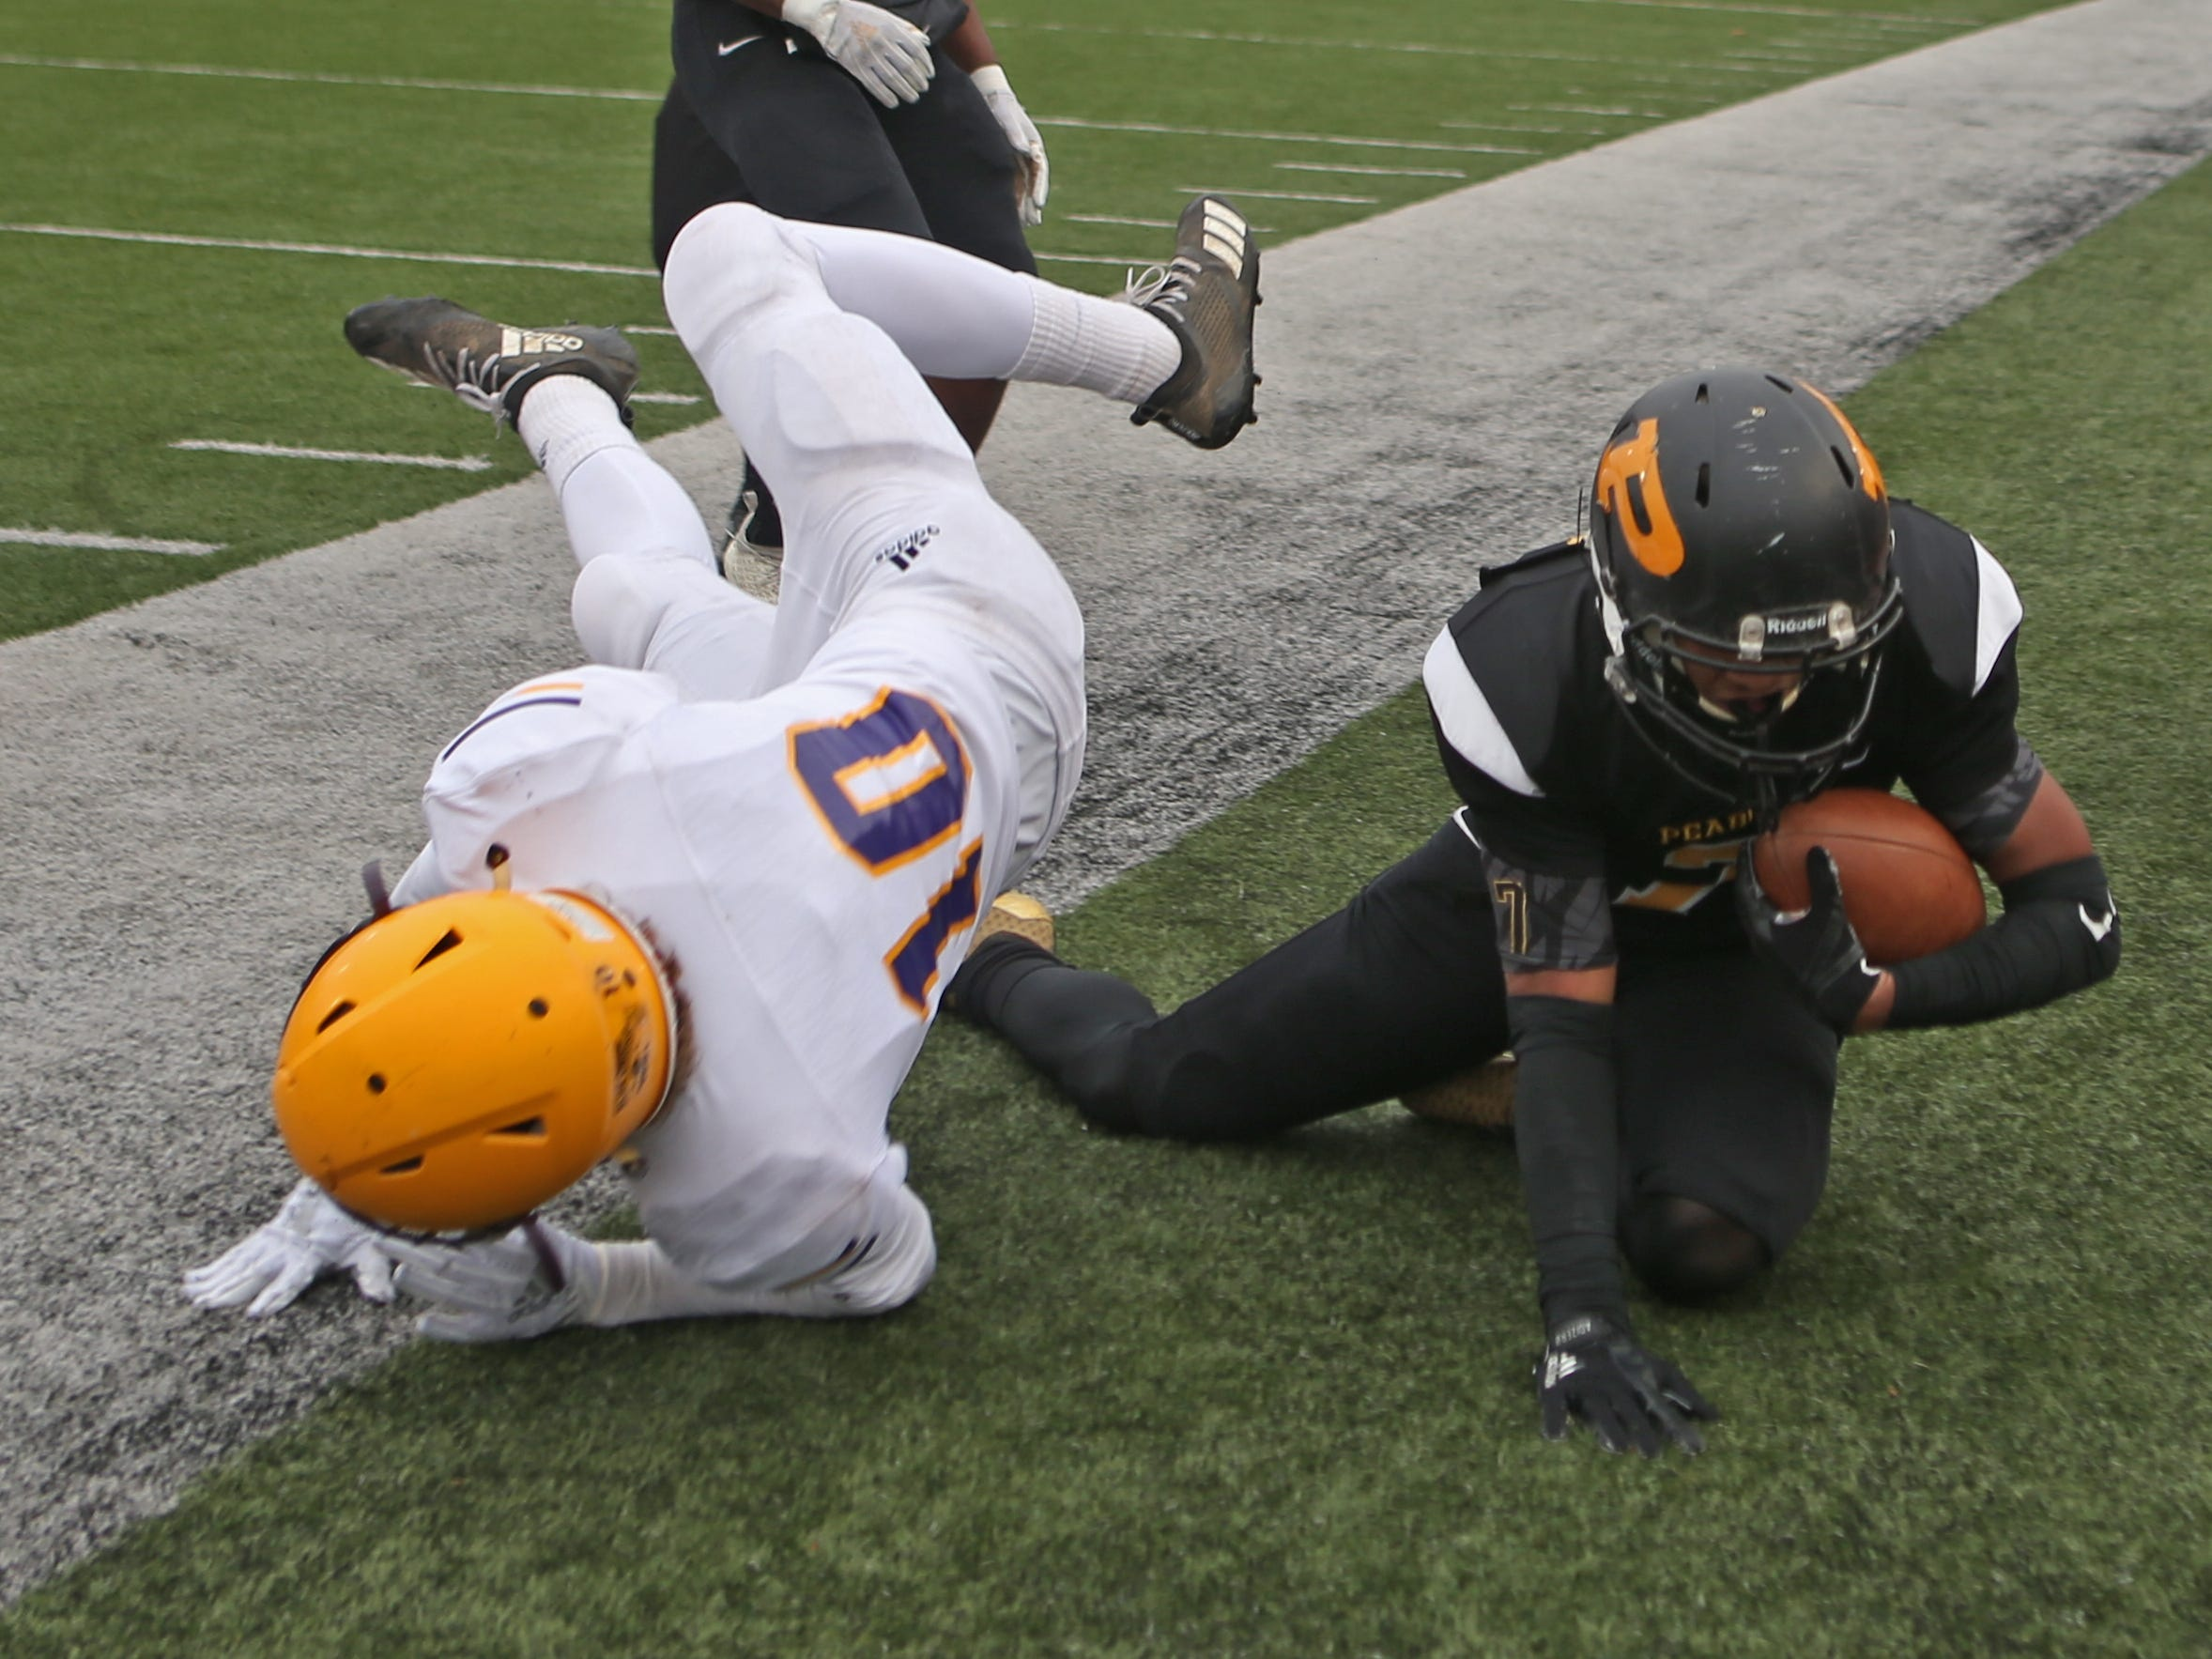 Trousdale's Alex Ford (10) and Peabody's Noah Halbrook (7) land out of bounds on a second-quarter run during the Class 2A BlueCross Bowl state championship at Tennessee Tech's Tucker Stadium in Cookeville, Tenn., on Thursday, Nov. 29, 2018.